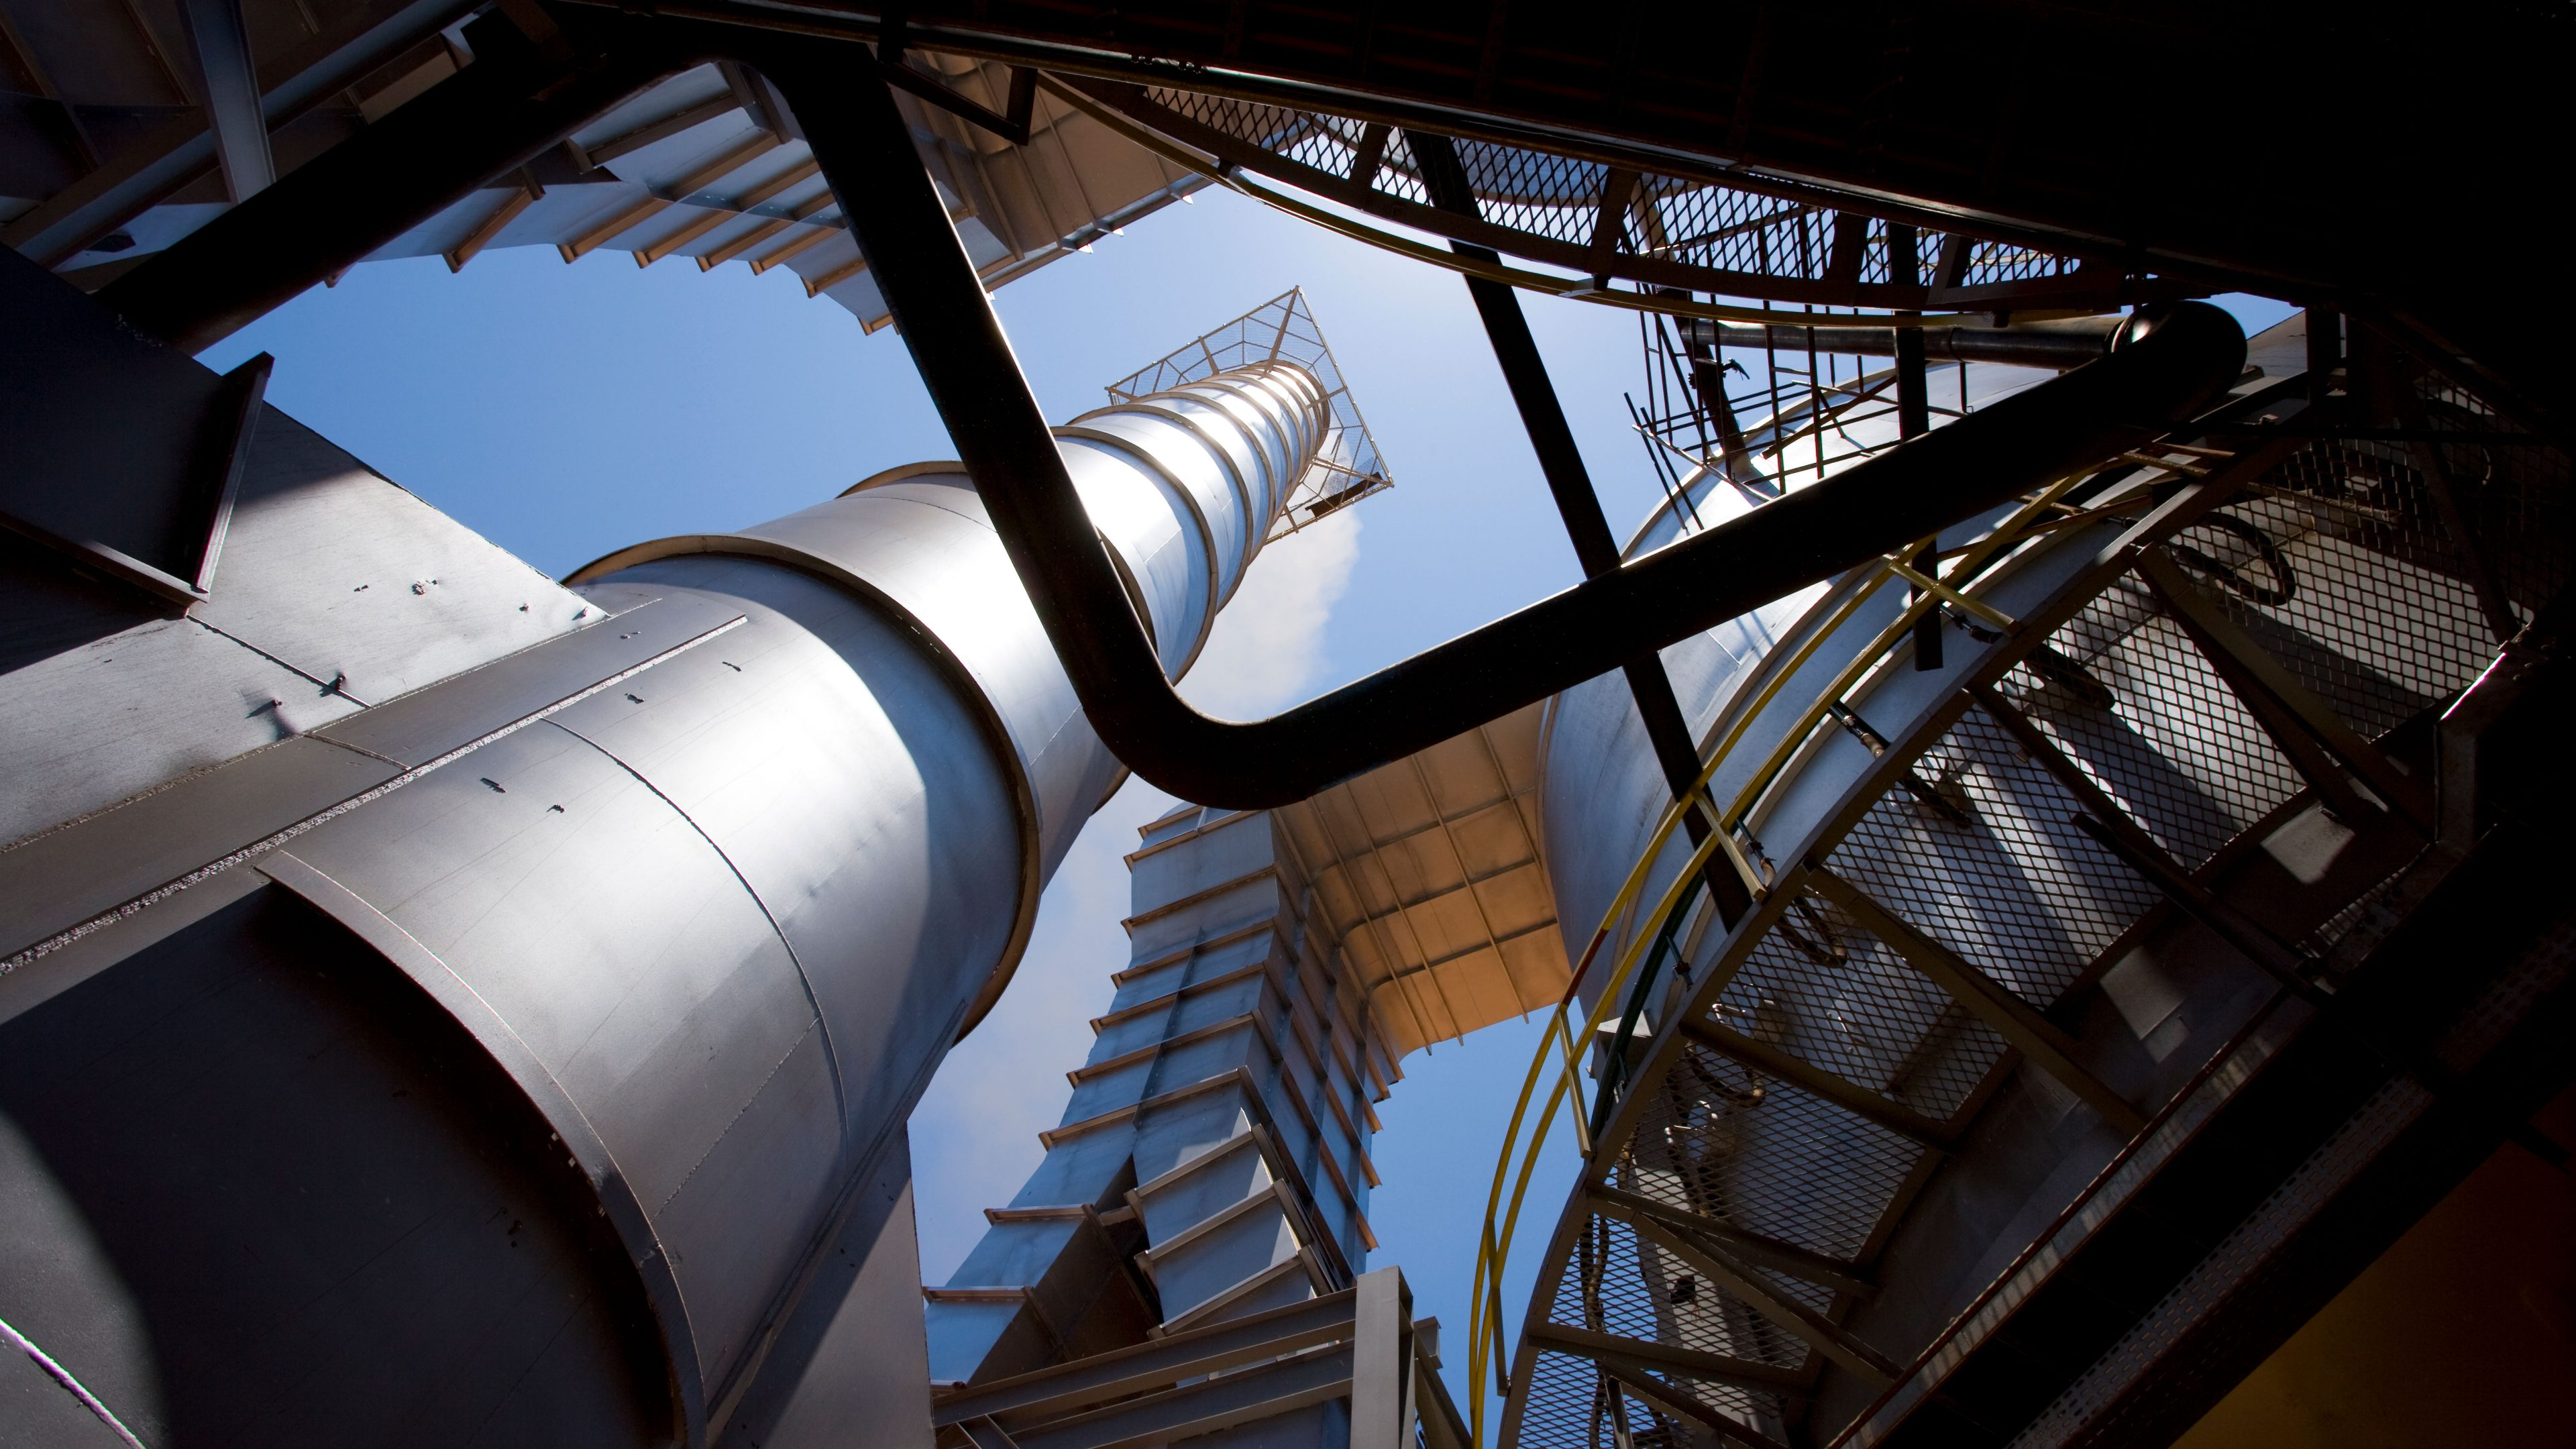 Looking up at the towers at the Tropical BioEnergia refinery in Brazil, 2008